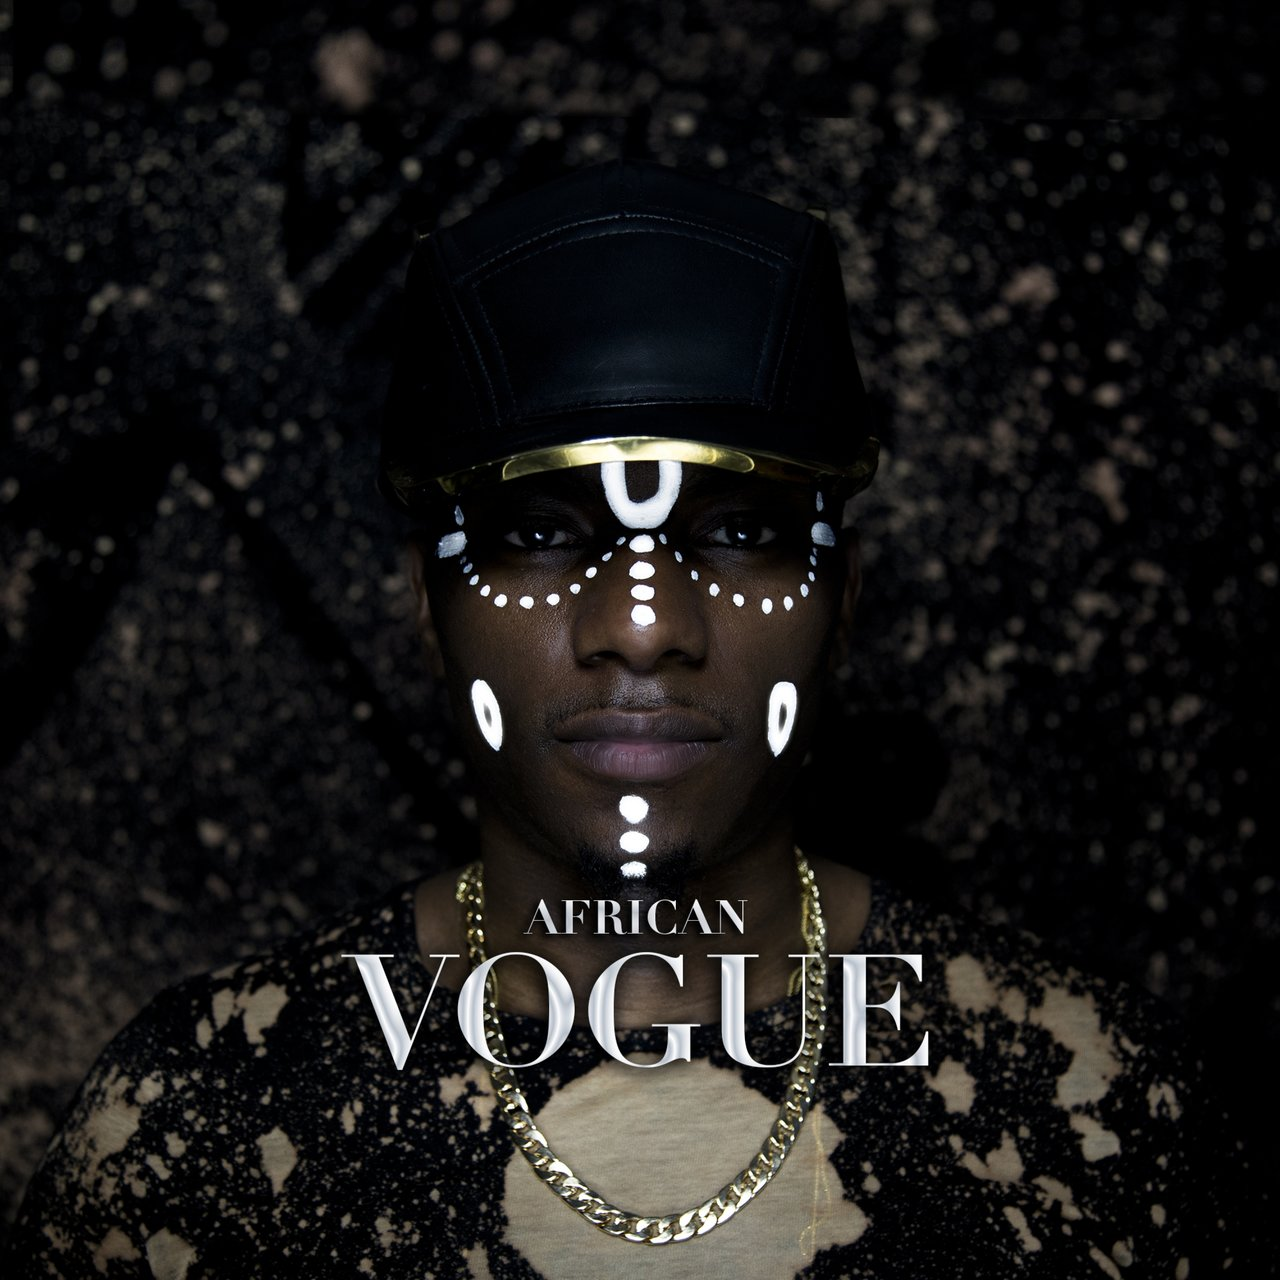 African Vogue (Deluxe Edition)